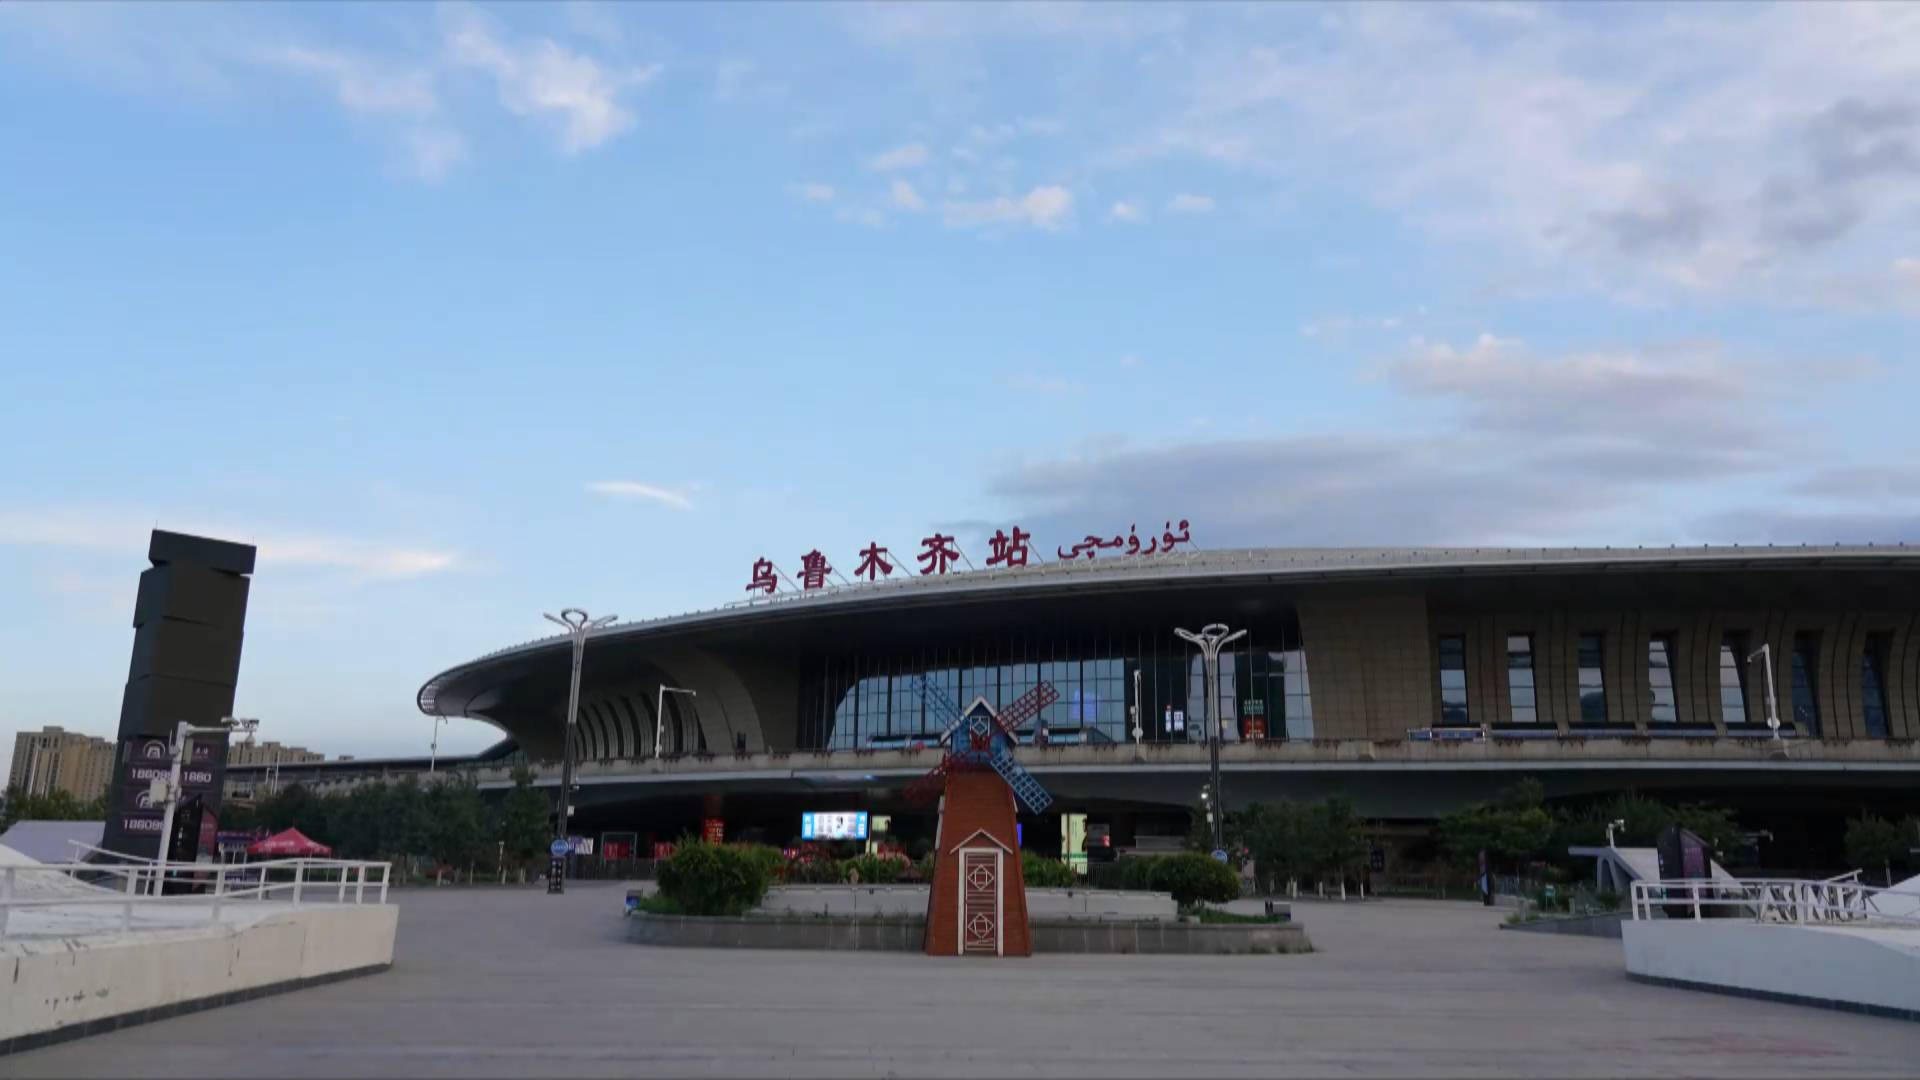 GLOBALink | Development of Xinjiang debunks rumors about human rights abuses: Egyptian politician